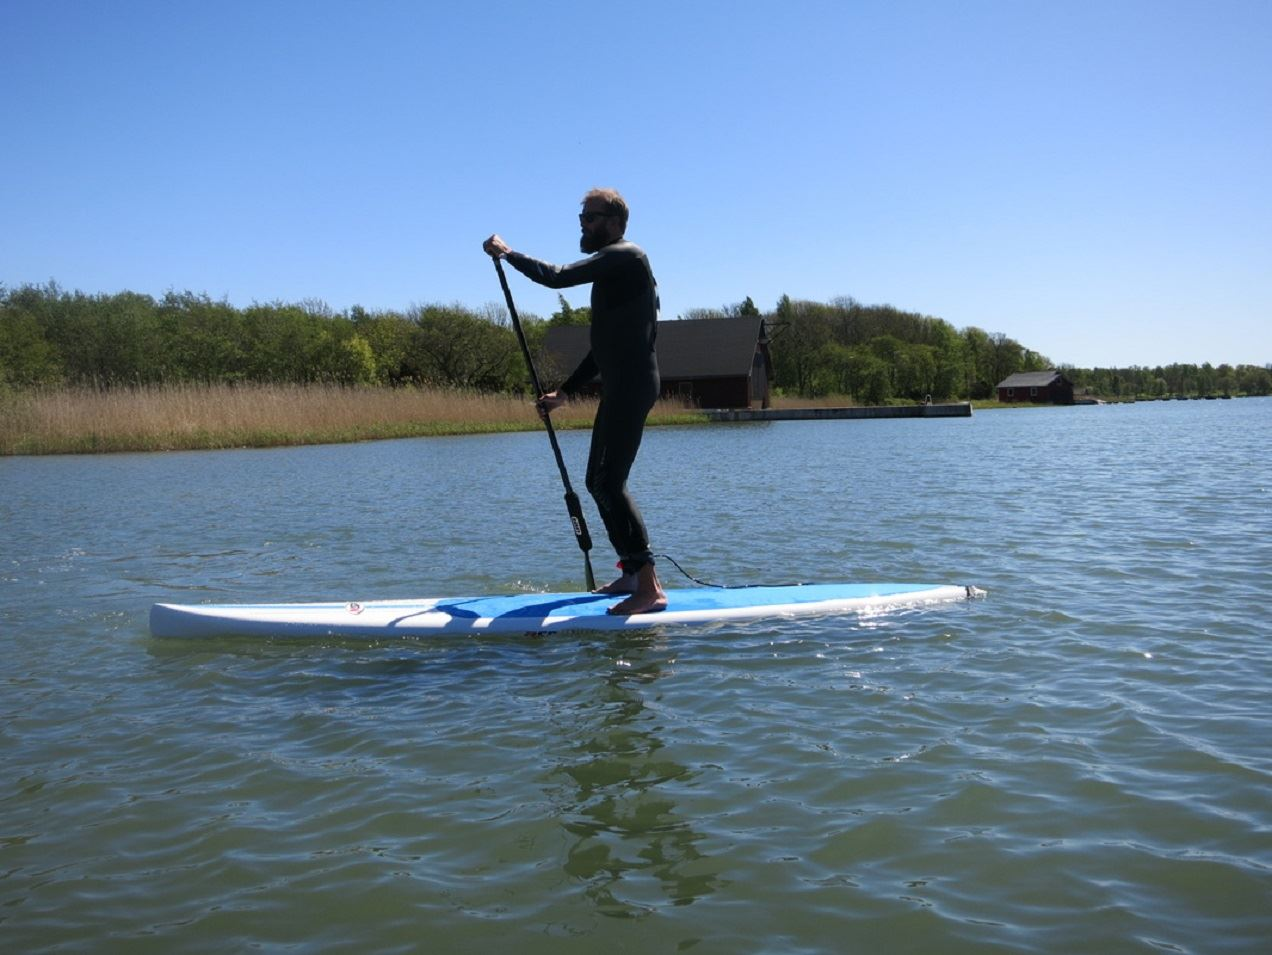 Paddelboden - Renting a Stand Up Paddleboard (SUP) 2 hours